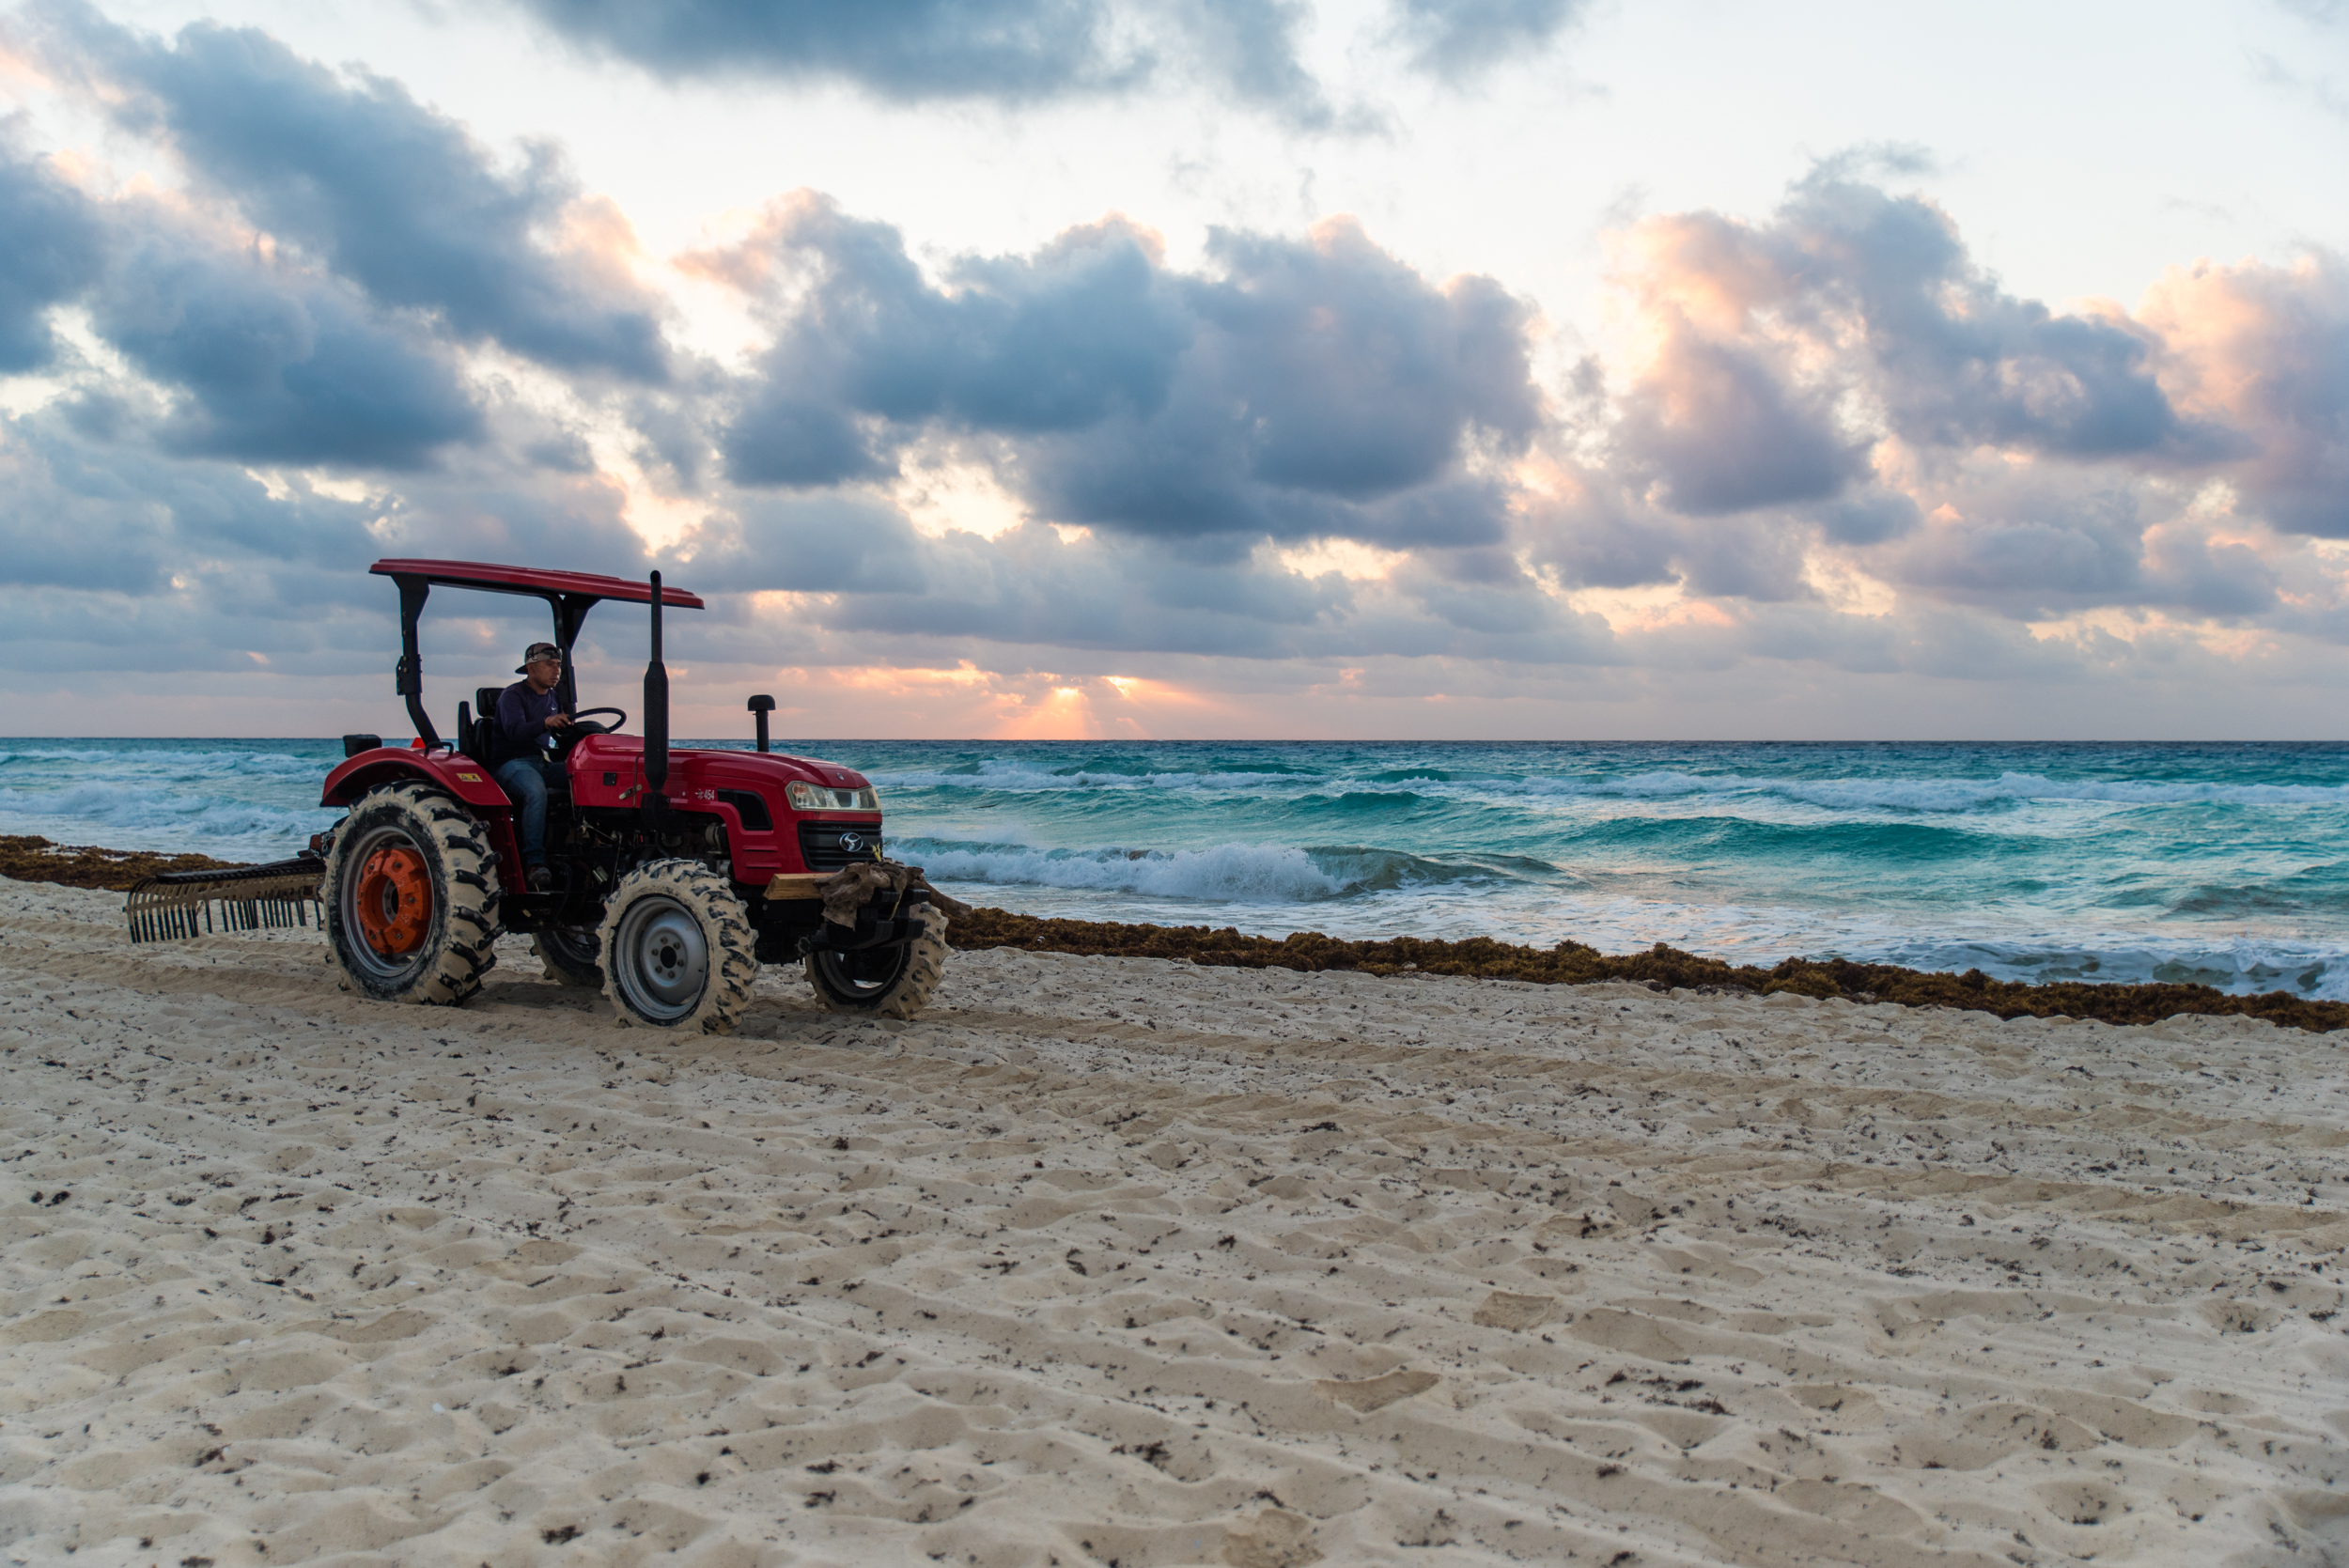 Just combing the beach in Mexico with the tractor. Getting up at 5am was oddly my favorite part of the trip.